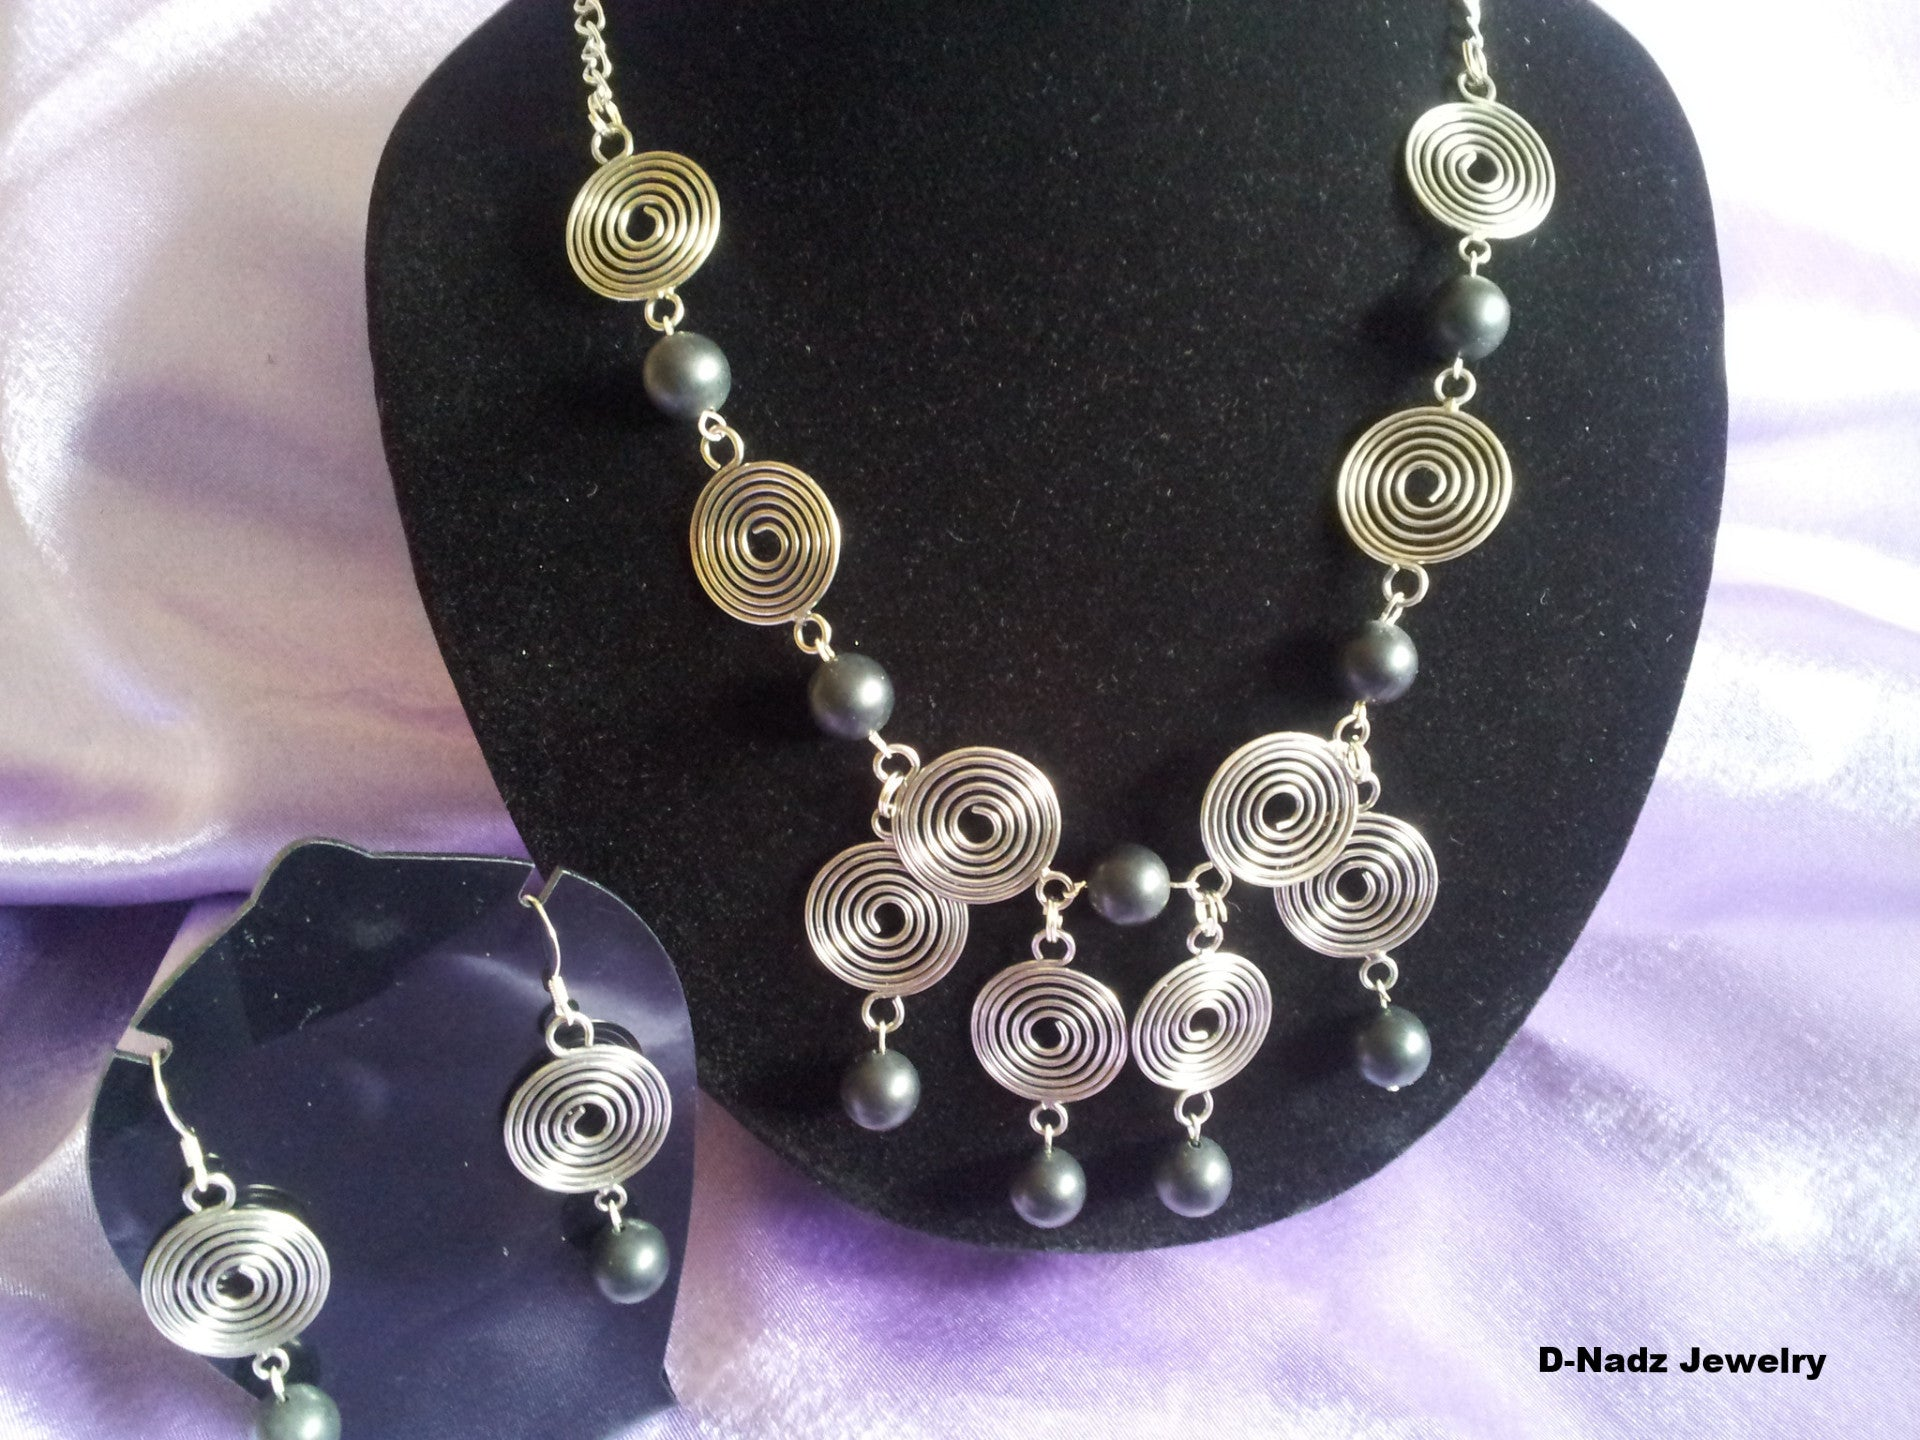 Balls Swirls - D-Nadz Jewelry